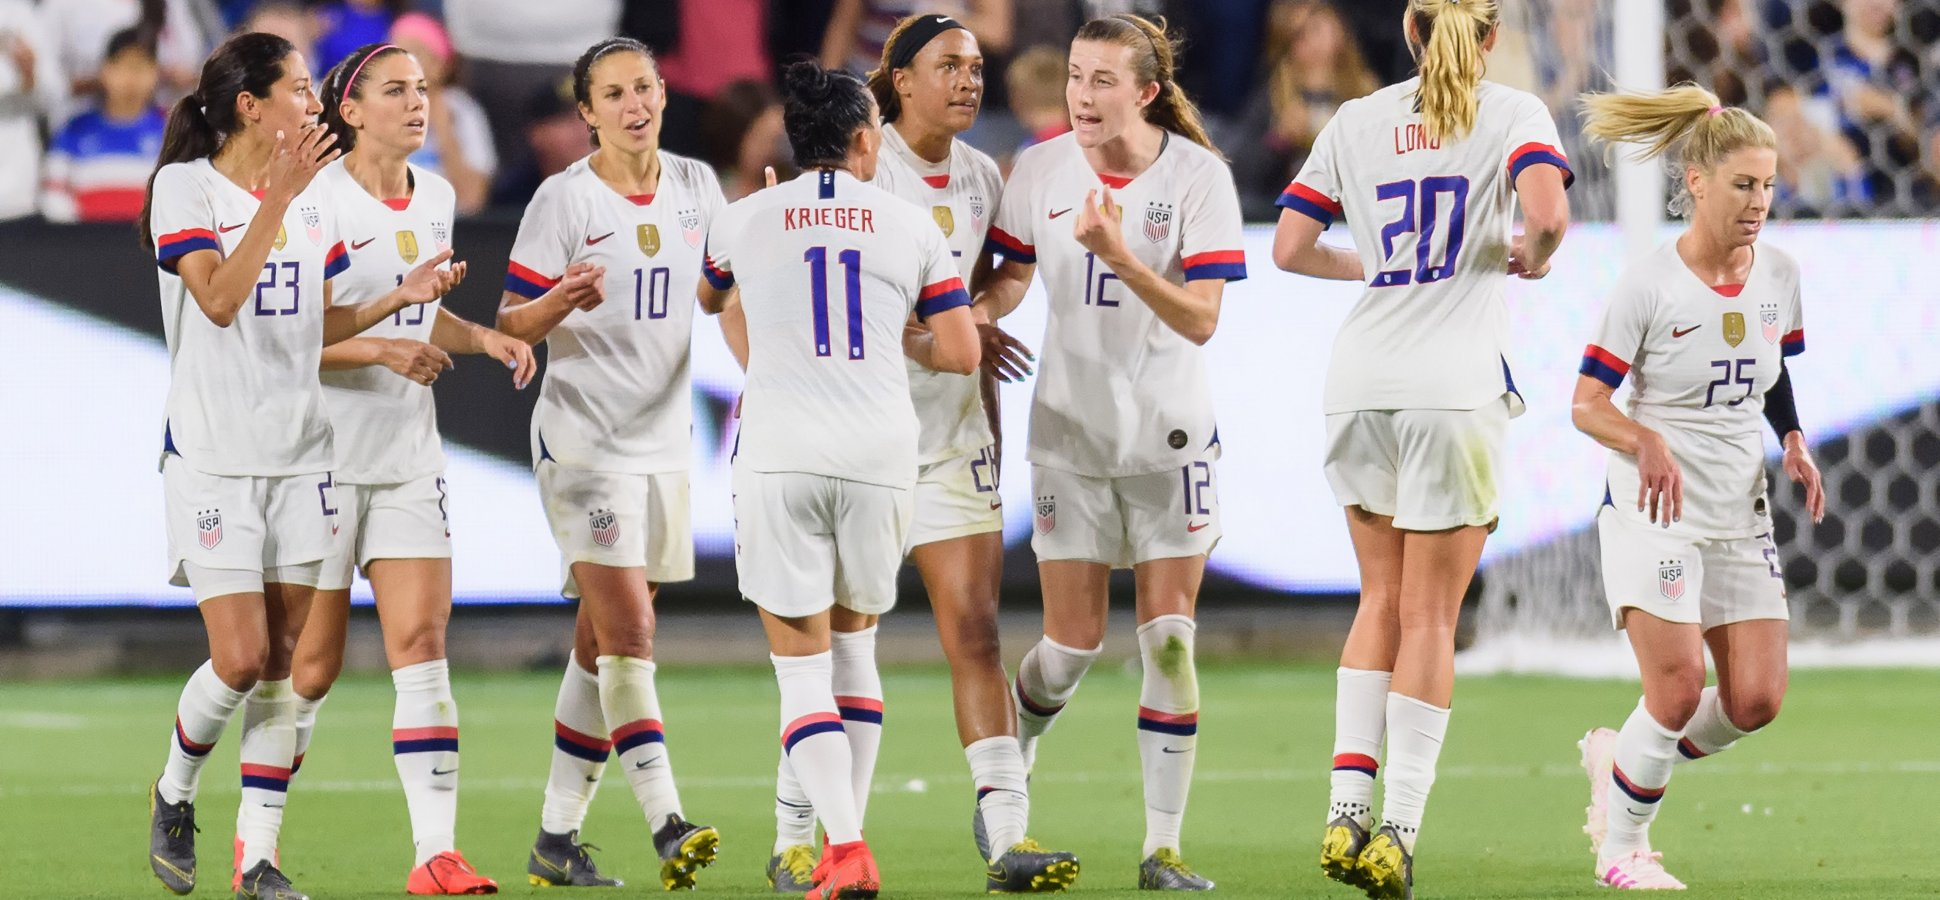 d3bb82a0c How the U.S. Women's National Soccer Team Plans to Win the Mental Game at  the 2019 World Cup | Inc.com